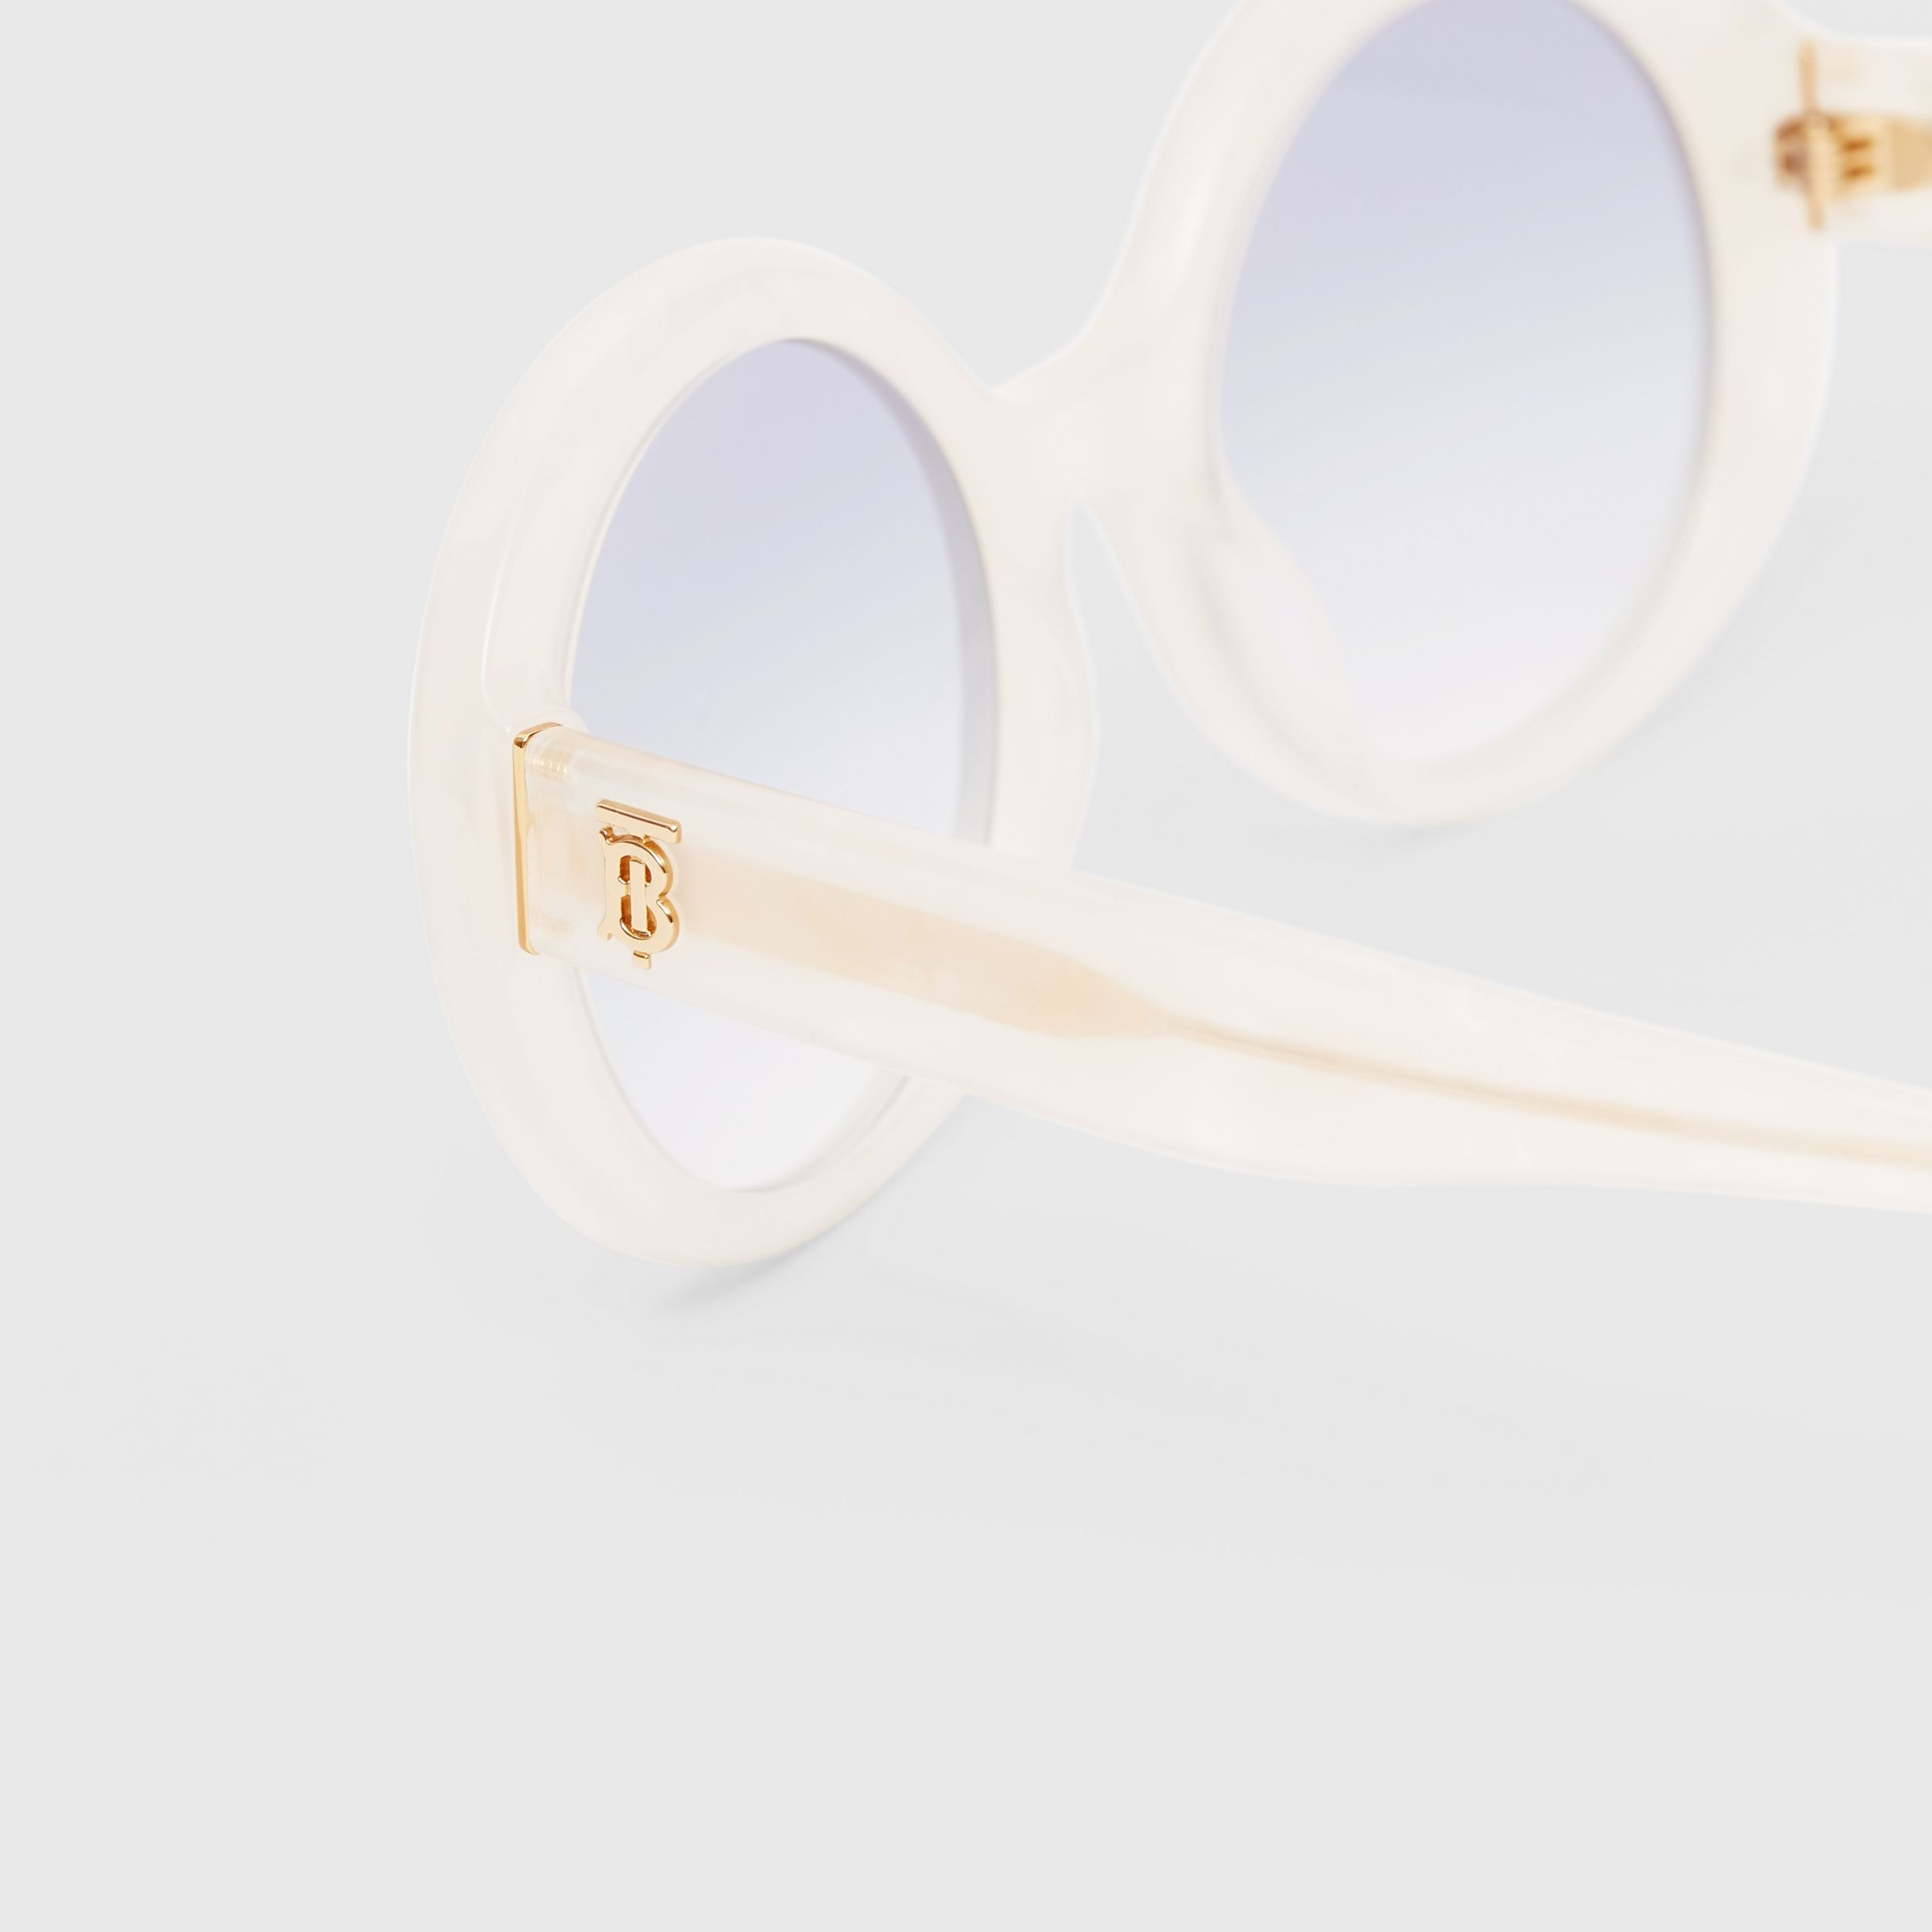 Oversized Round Frame Sunglasses in Pearl - Women | Burberry Canada - 2